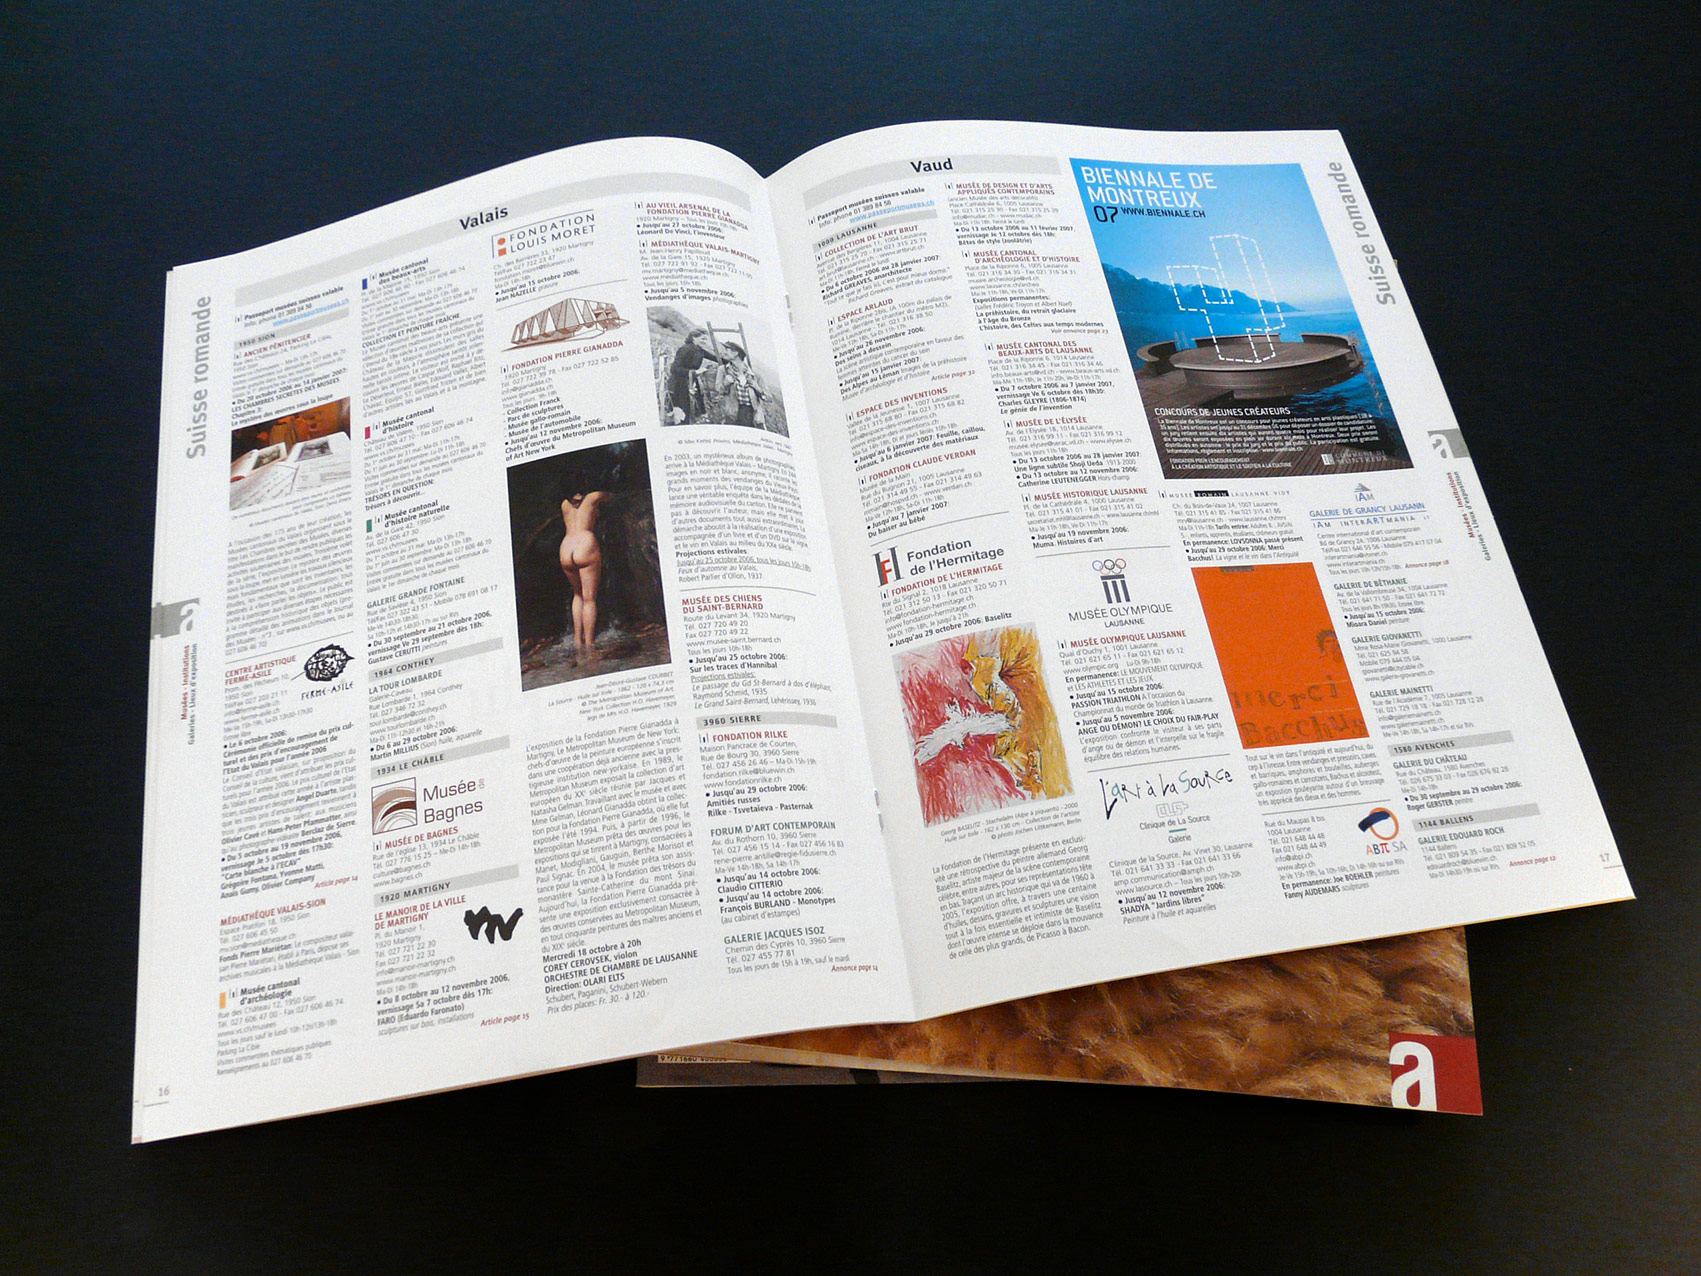 Accrochages magazine d'art et agenda culturel de Suisse romande, direction artistique et mise en pages © Haymoz design, graphiste Lausanne